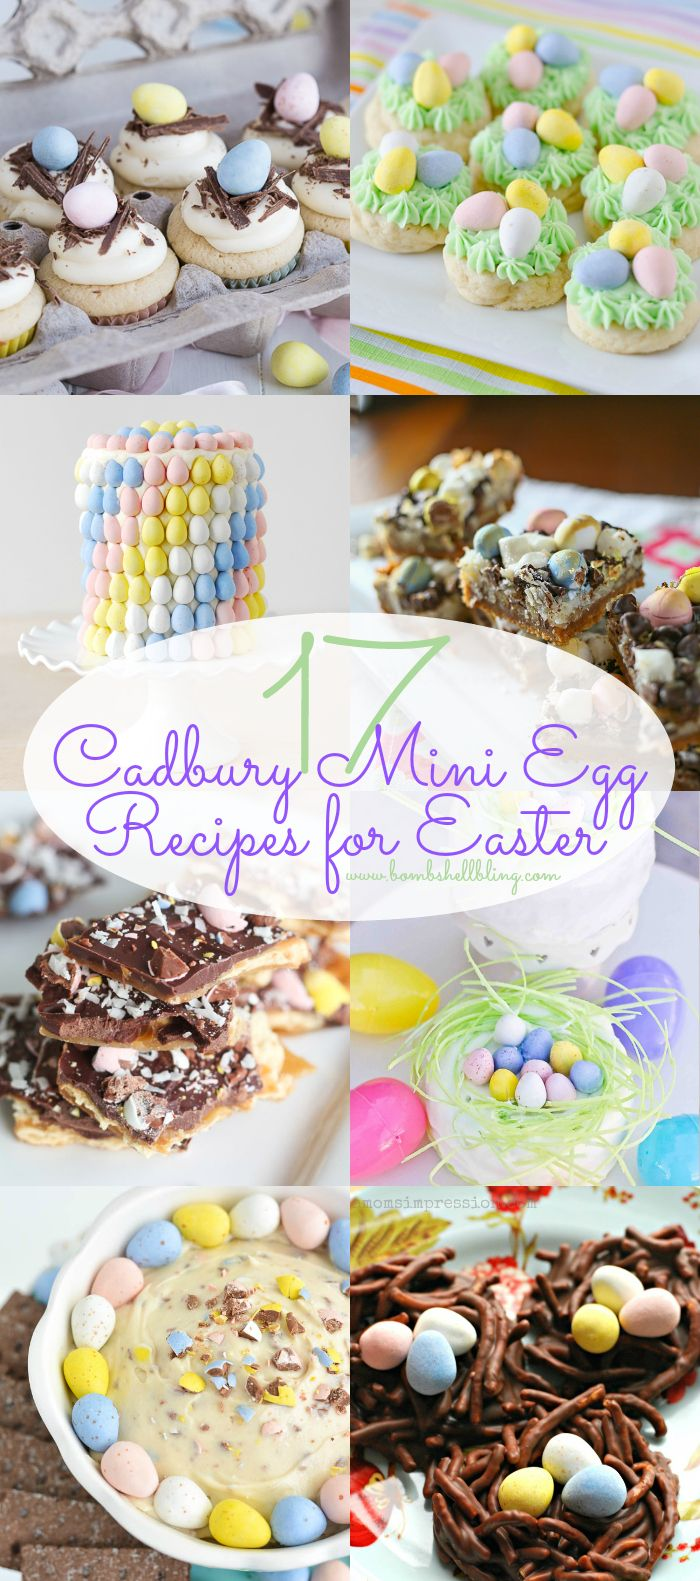 These are 17 of the best Cadbury Mini Eggs recipes from around the internet. Perfect for Easter baking!